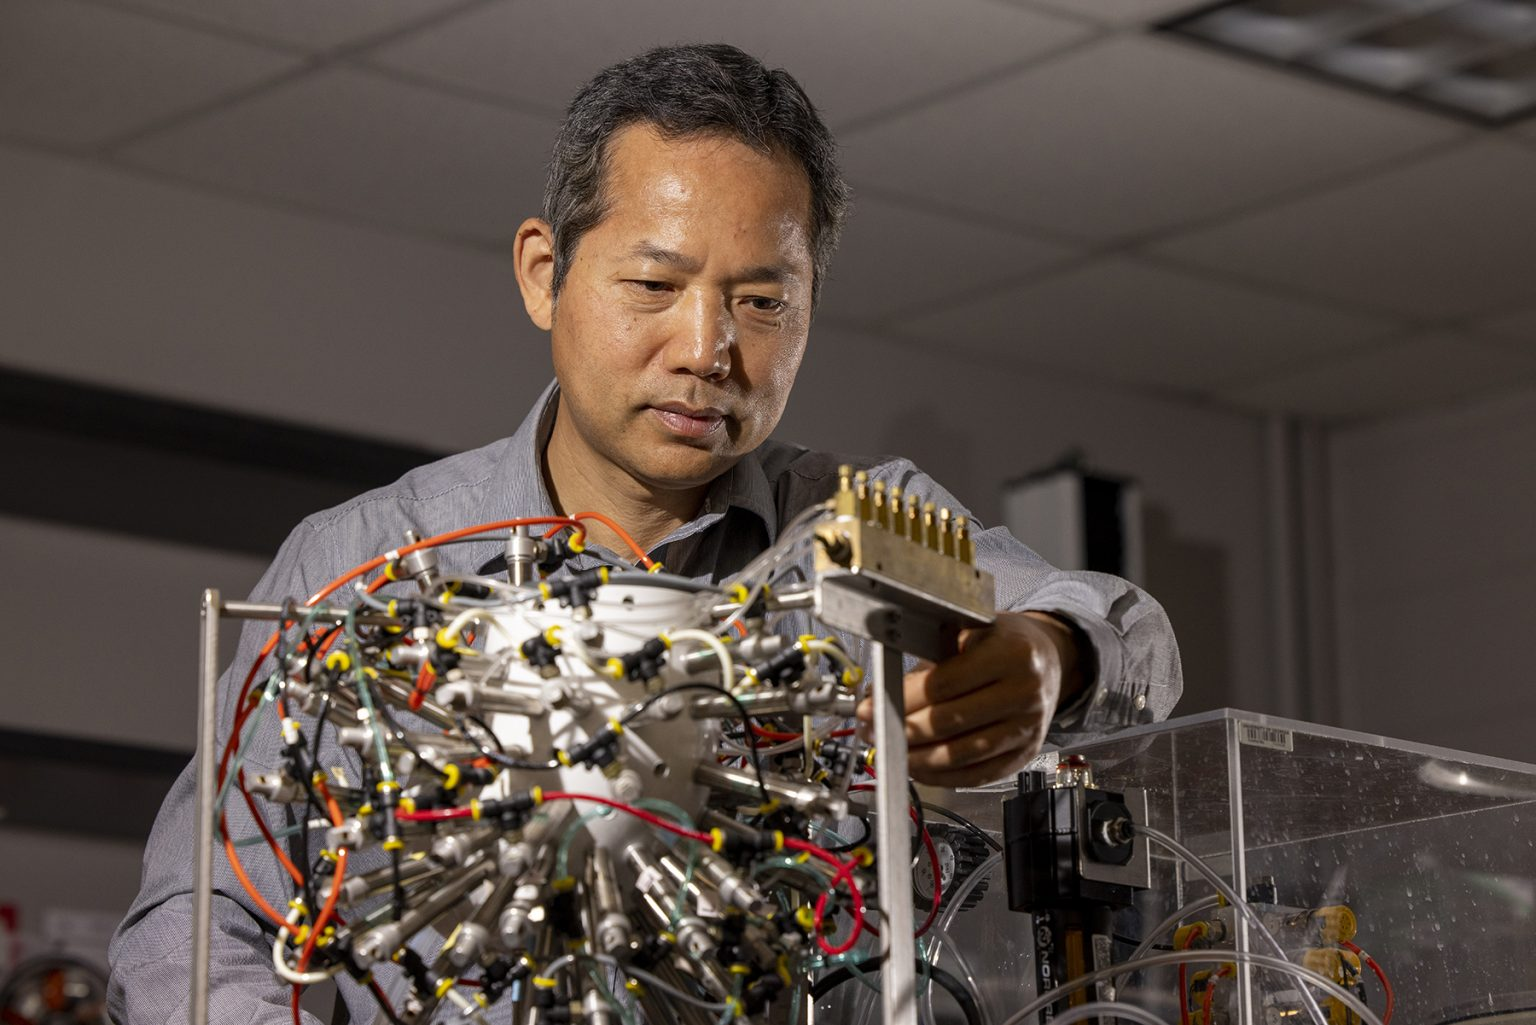 Fanbin Kong, professor of food engineering at UGA's Department of Food Science and Technology, works to build artificial gastrointestinal systems and study the digestion of food and nonfood materials. (Photo by Dorothy Kozlowski/UGA)